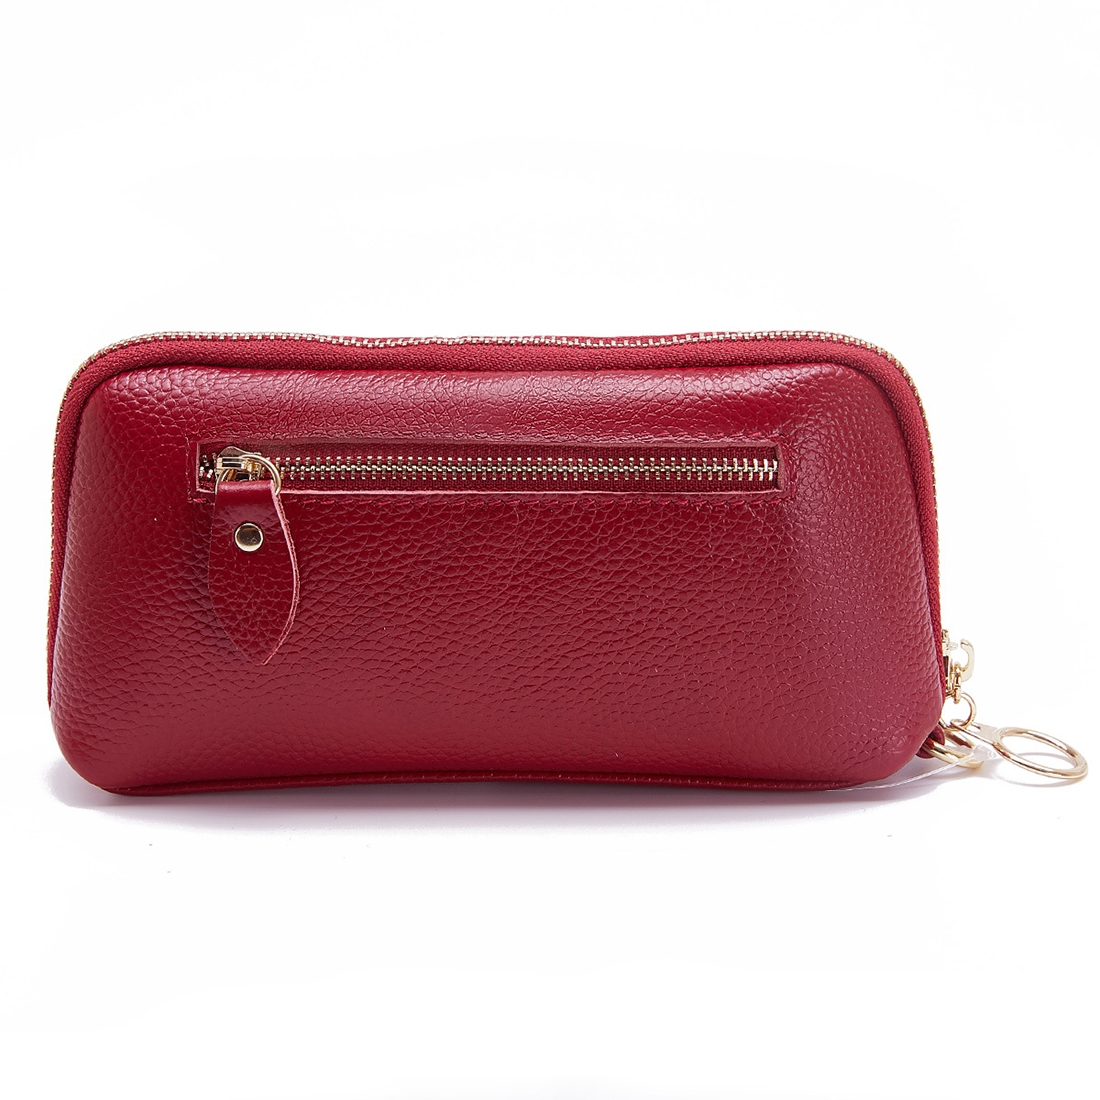 2-Folding Square Genuine Leather Handbag (Red)